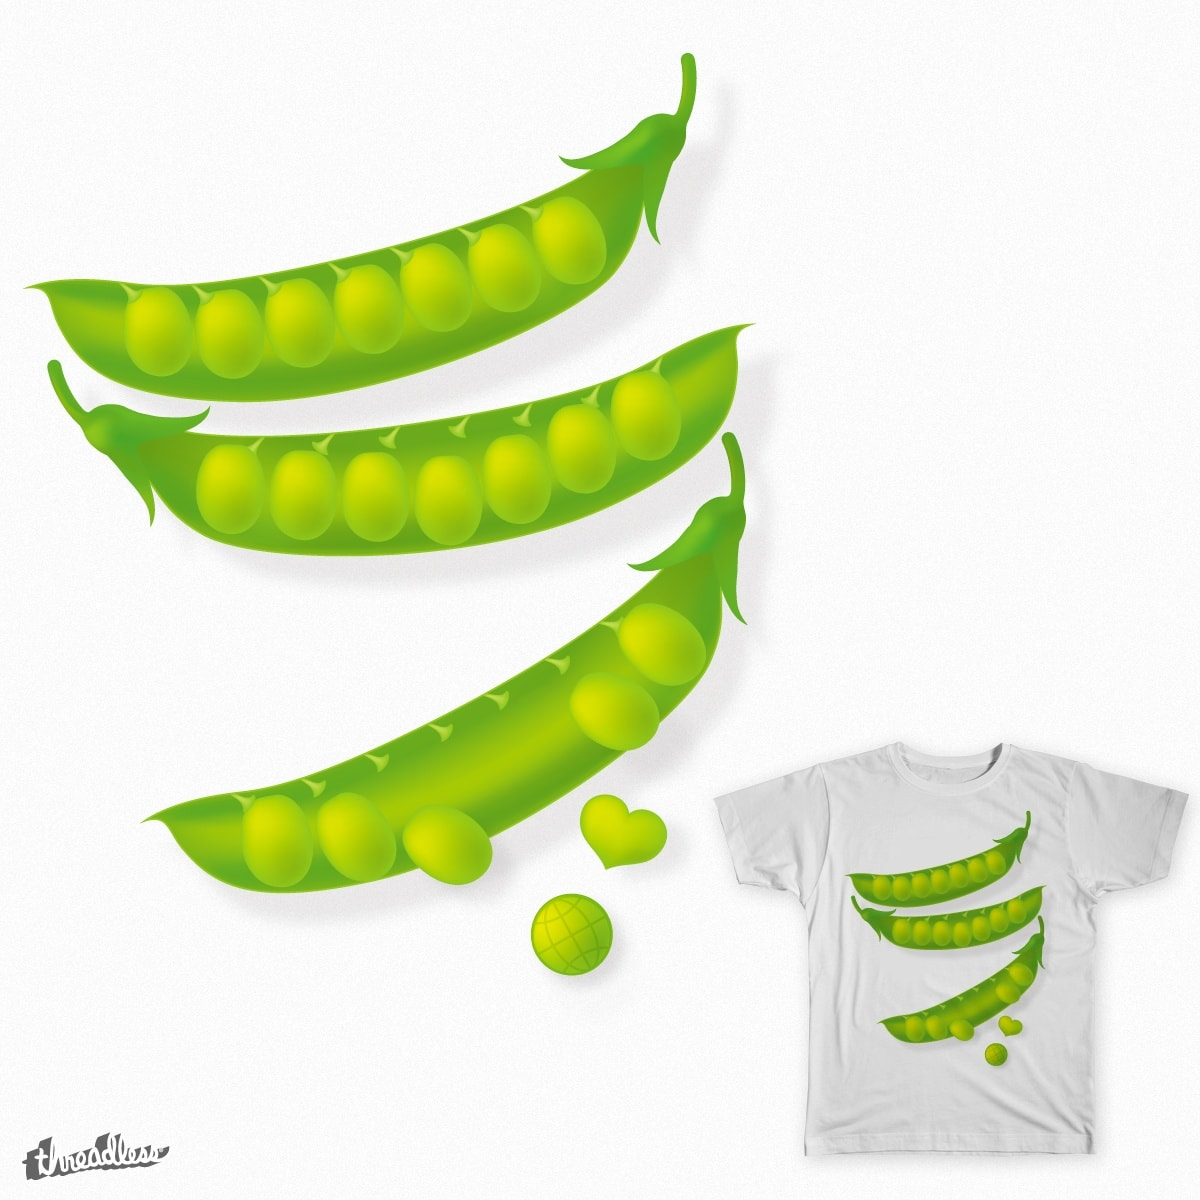 Small discovery in the daily life. by k-mano on Threadless